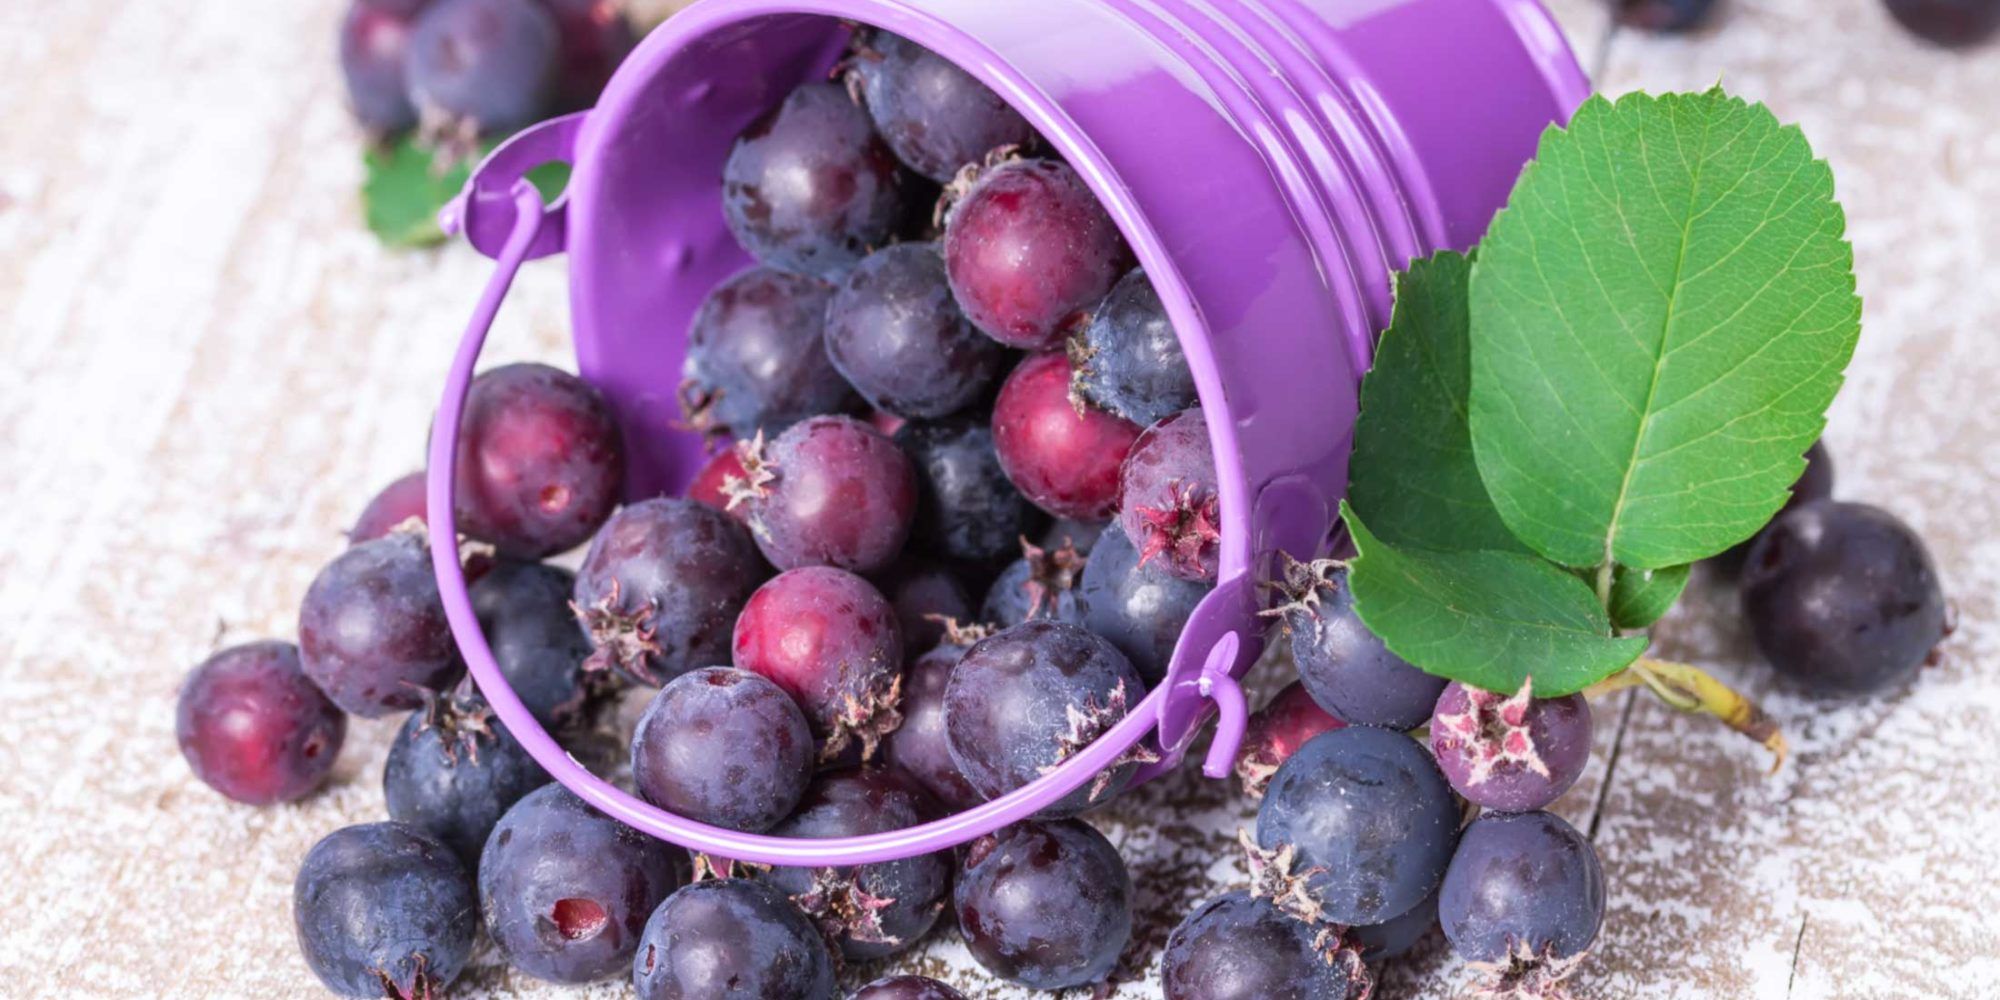 Image of saskatoon berries in bucket